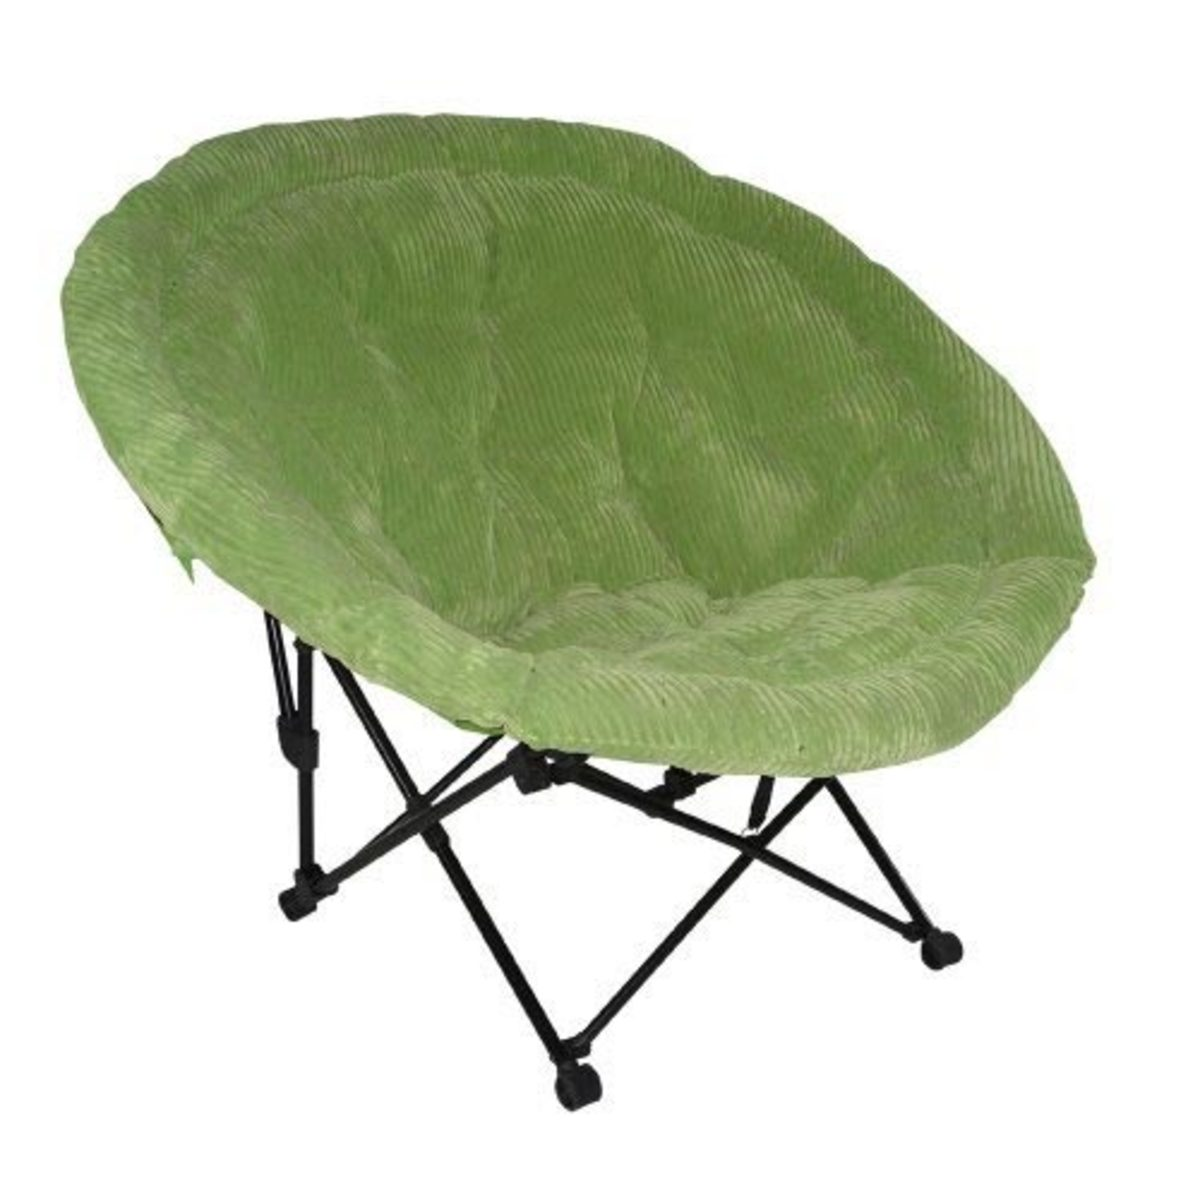 sc 1 st  HubPages & Really Cool and Cheap Round Chairs | HubPages